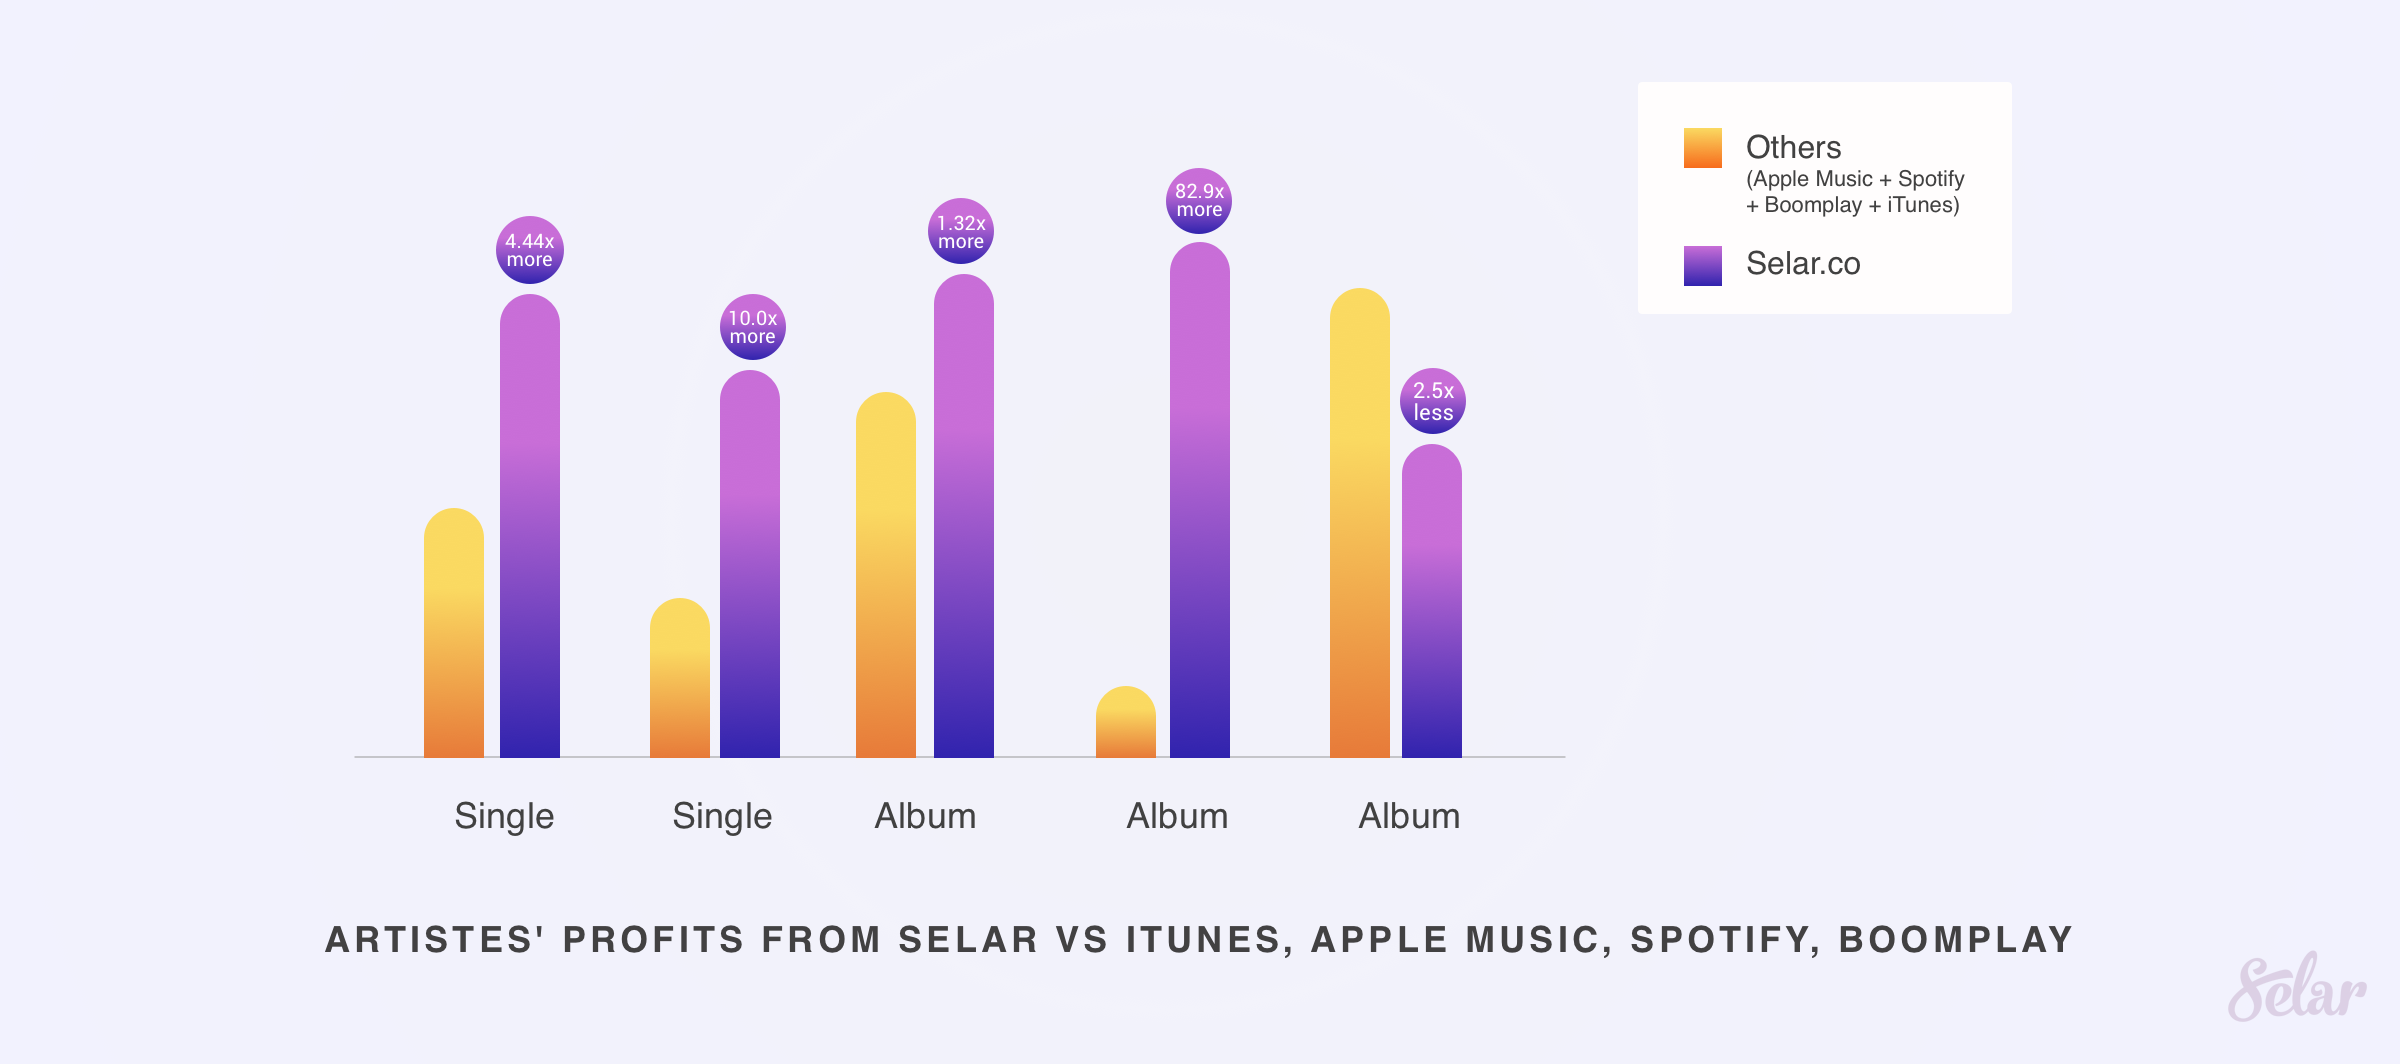 Comparing artistes' profits from Selar with iTunes, Apple music, Spotify, Boomplay